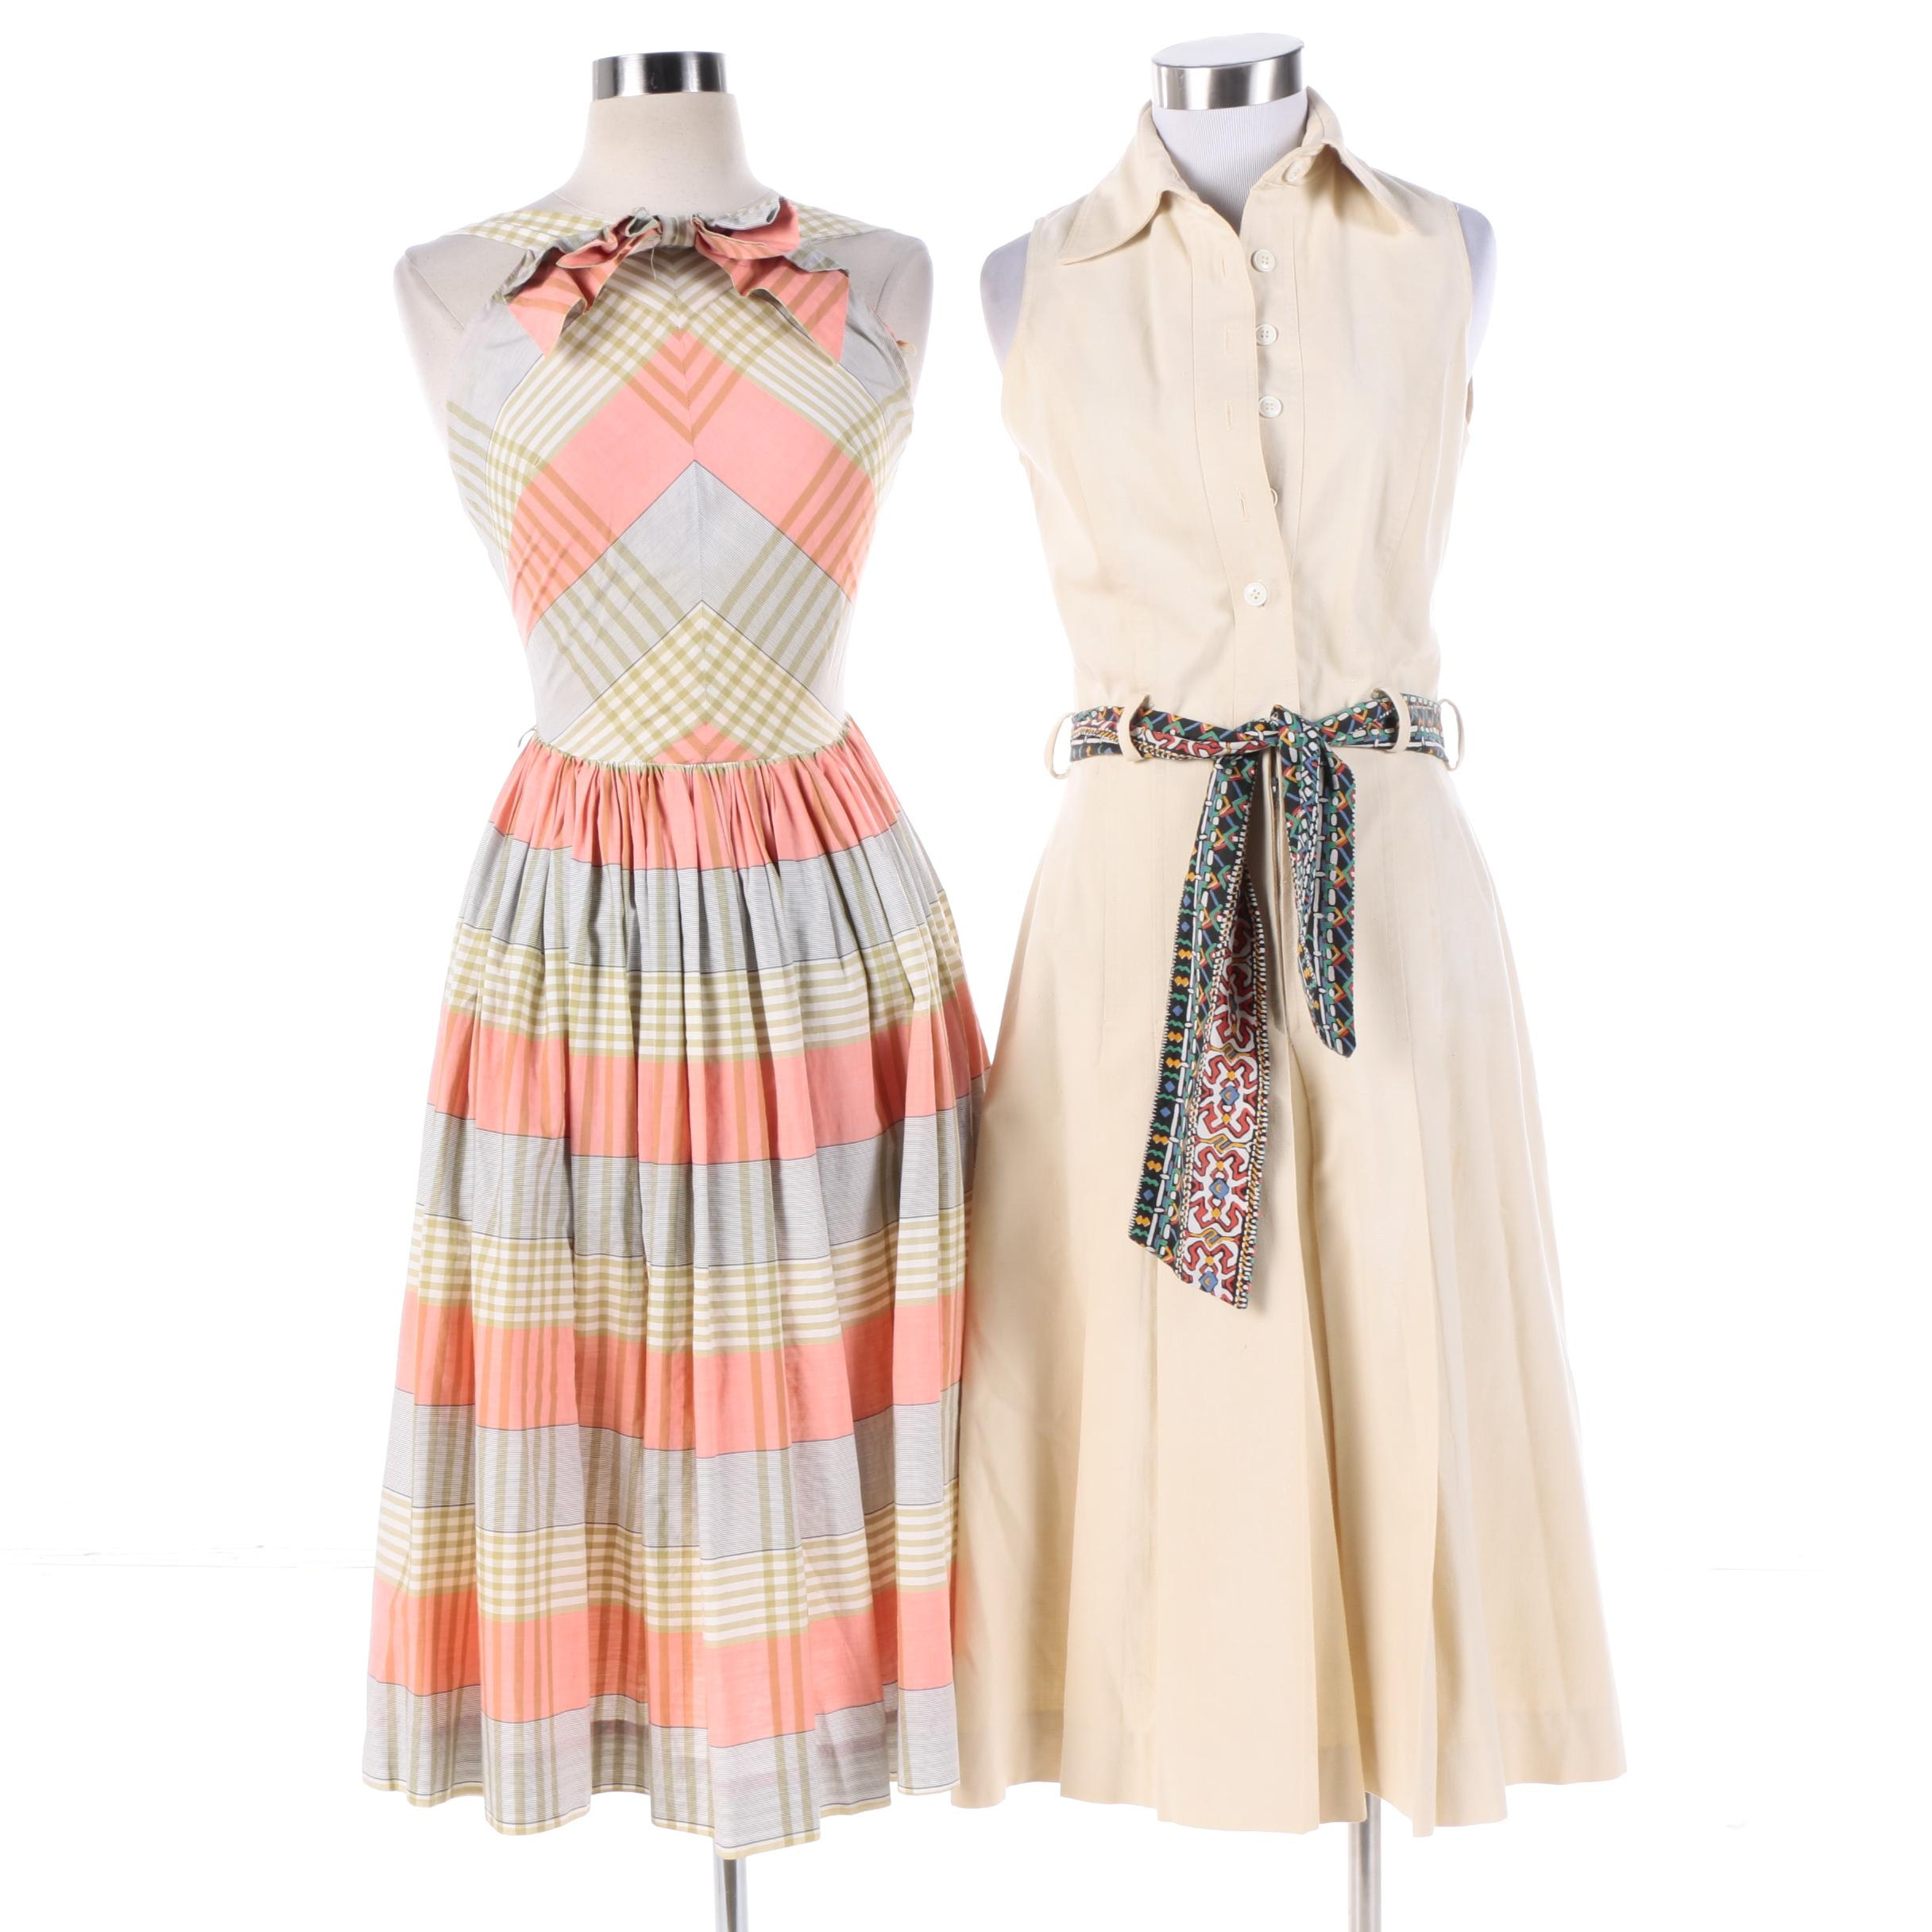 1950s Vintage Bill Haire for Friedricks Jumpsuit and Jo Collins Sun Dress